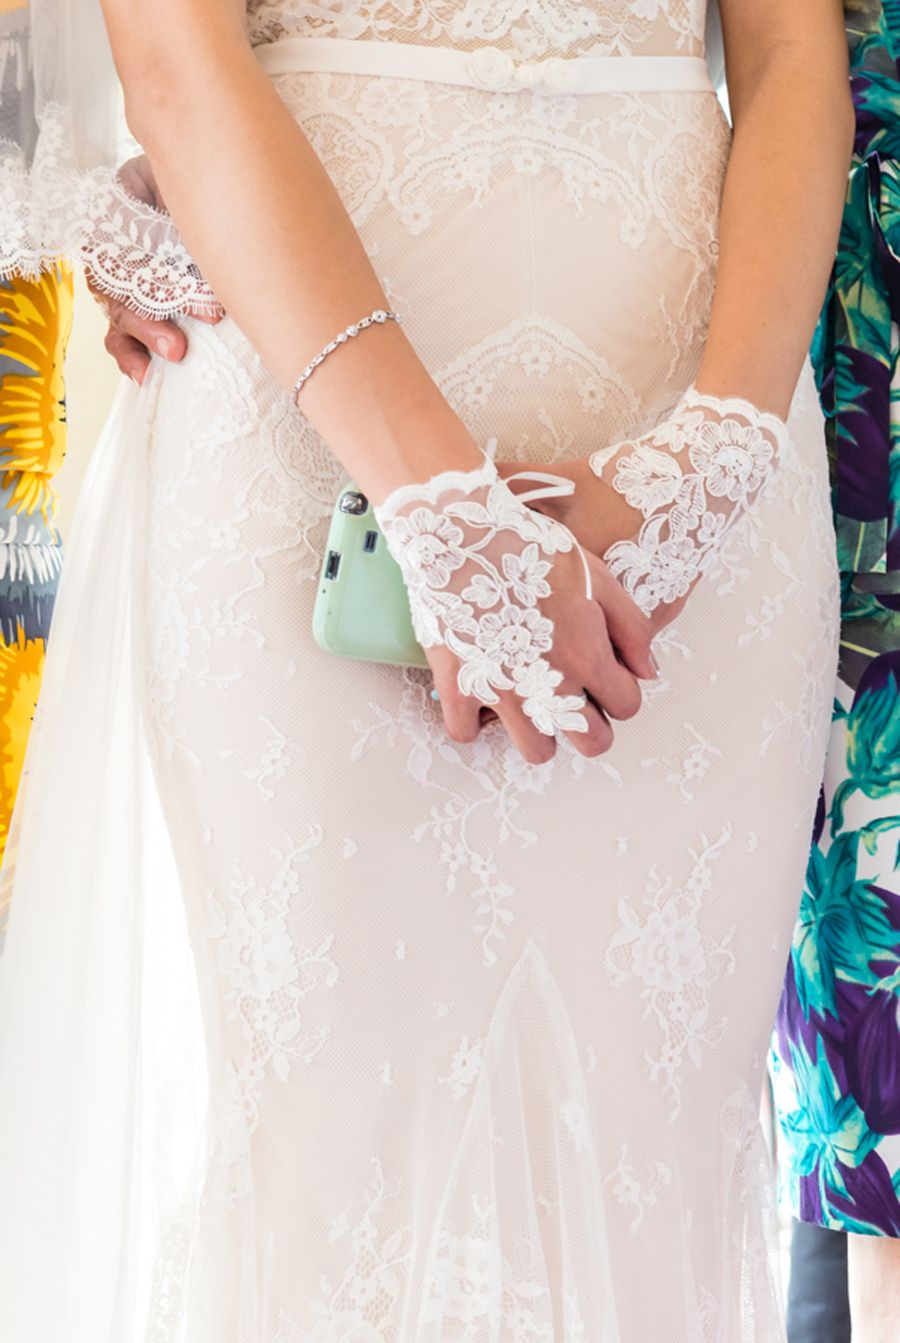 Bridal Accessories Lace Gloves Wedding Dress By Inbal Dror A Vibrant Singapore At Marina Barrage